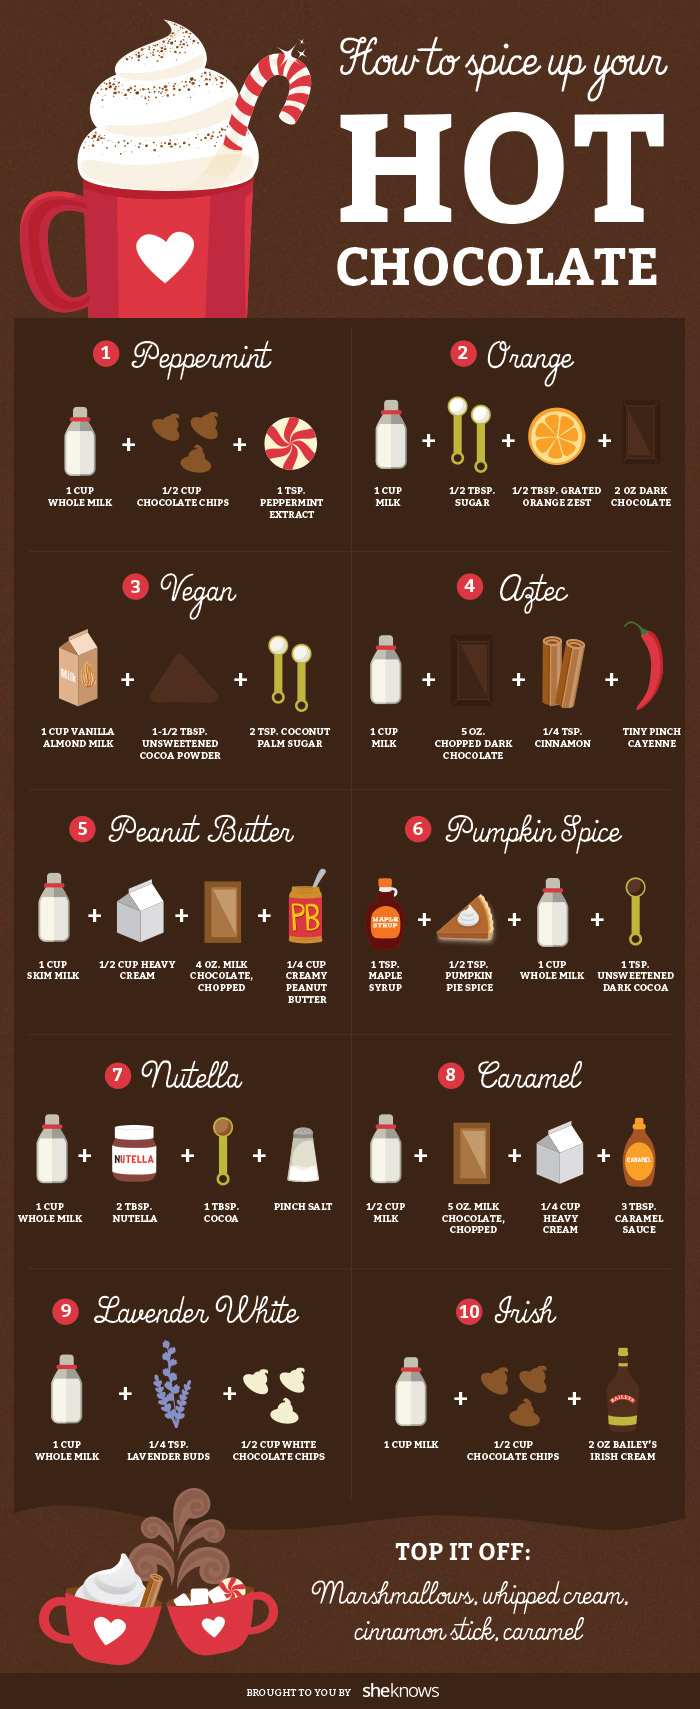 Make better hot chocolate